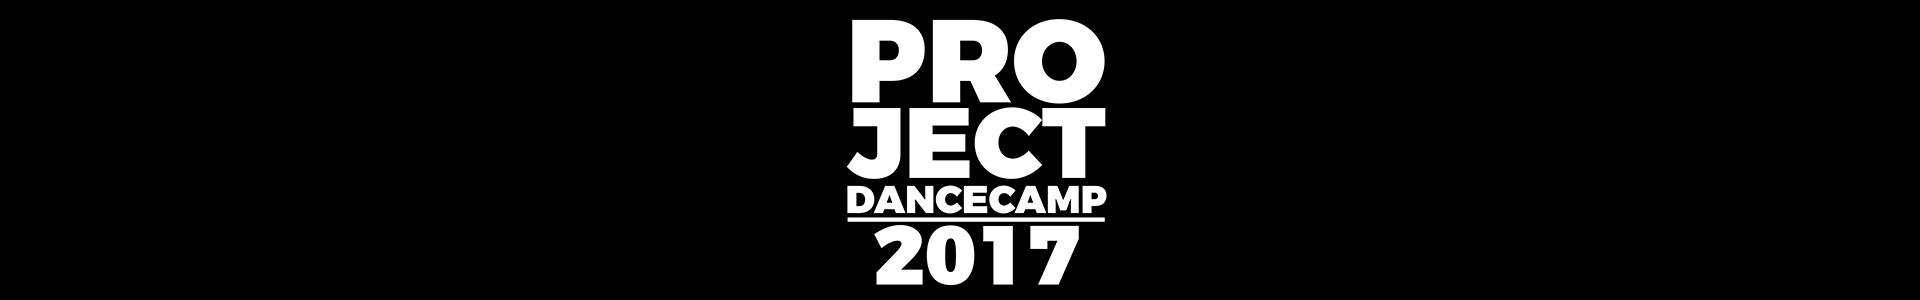 Project Dance Camp 2017 Promo